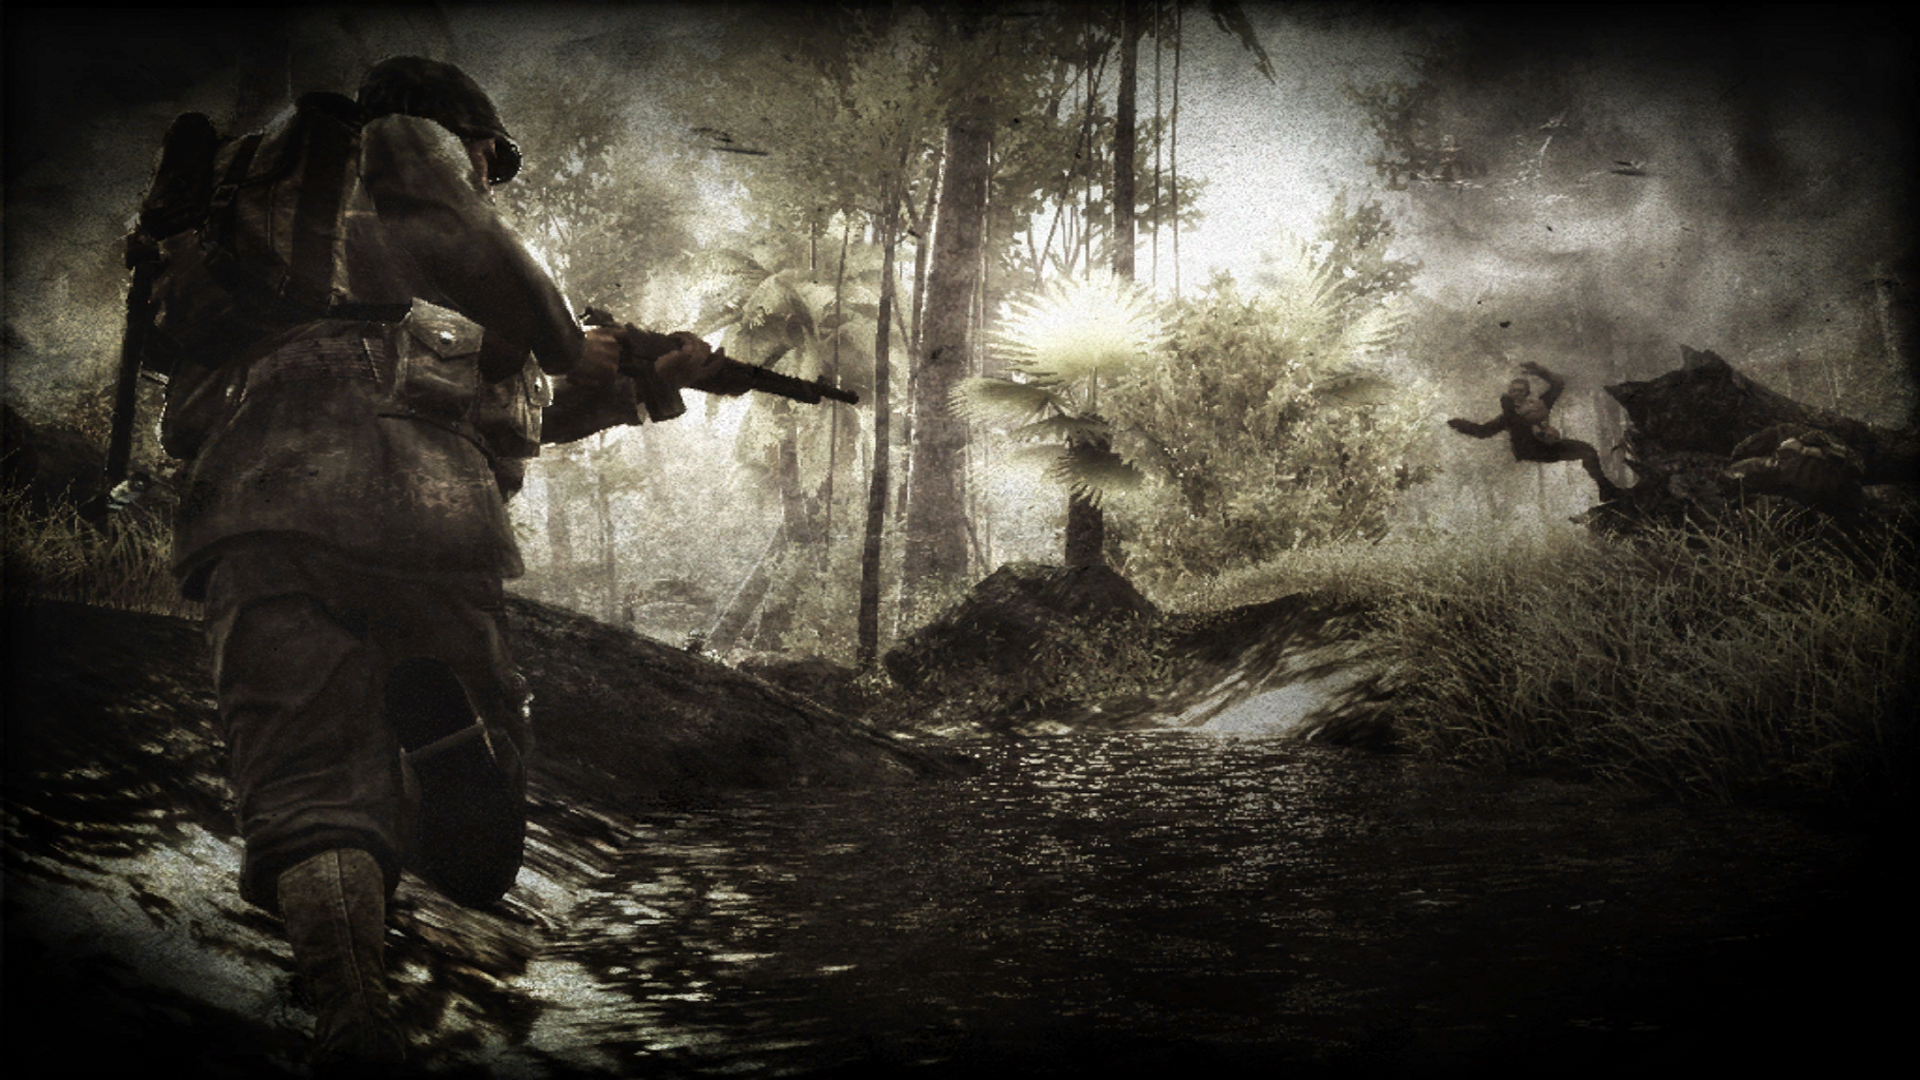 HD BWALLPAPERS B BCall Of Duty